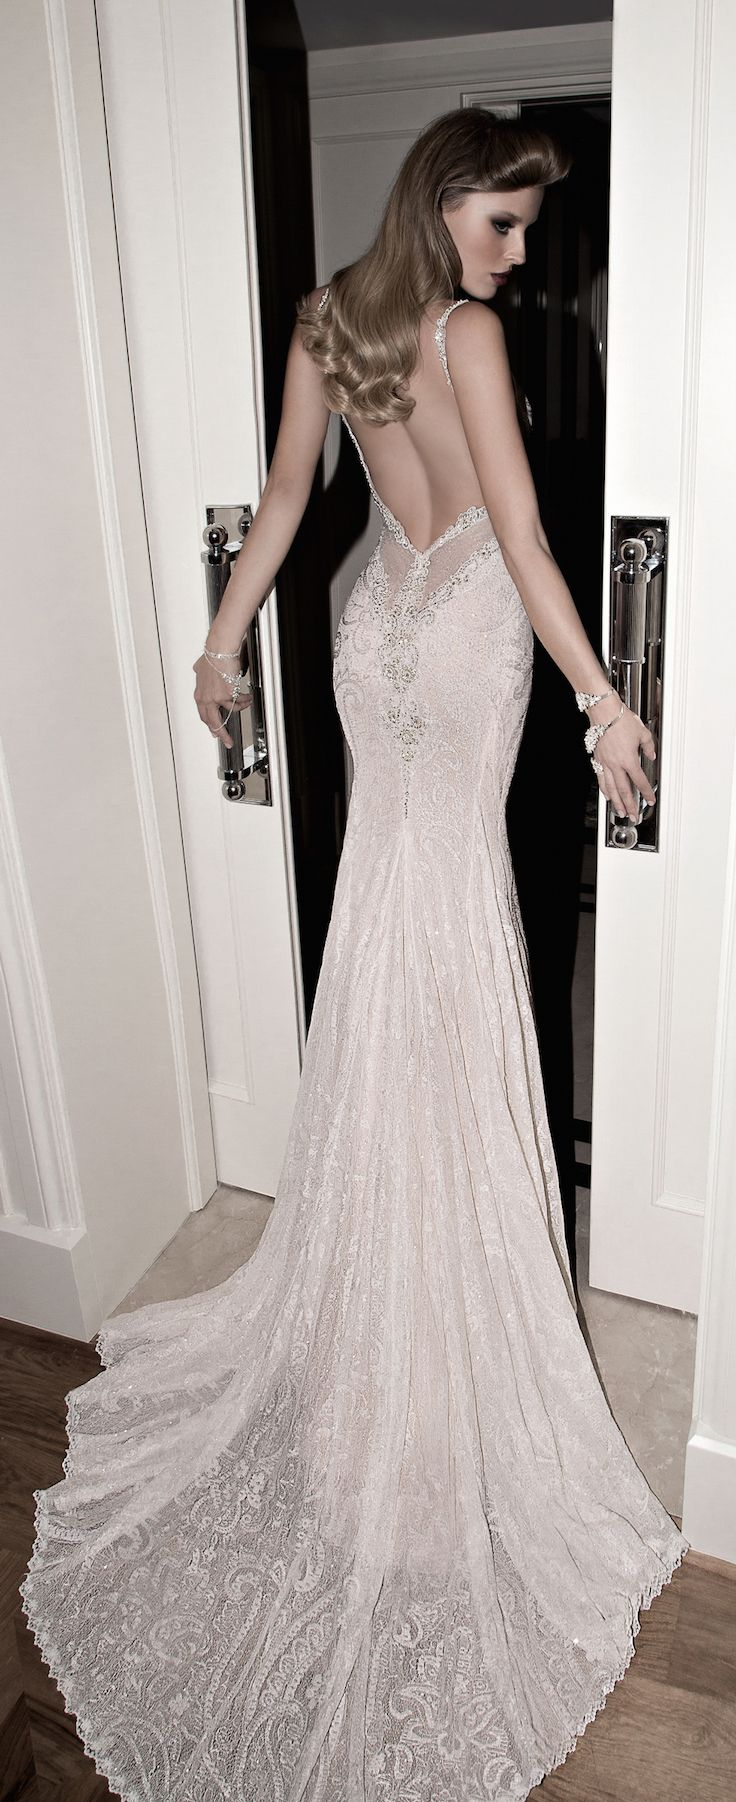 """Introducing the Norma bridal gown from our new collection, """"Tales of The Jazz Age"""" #galialahav #newcollectio"""